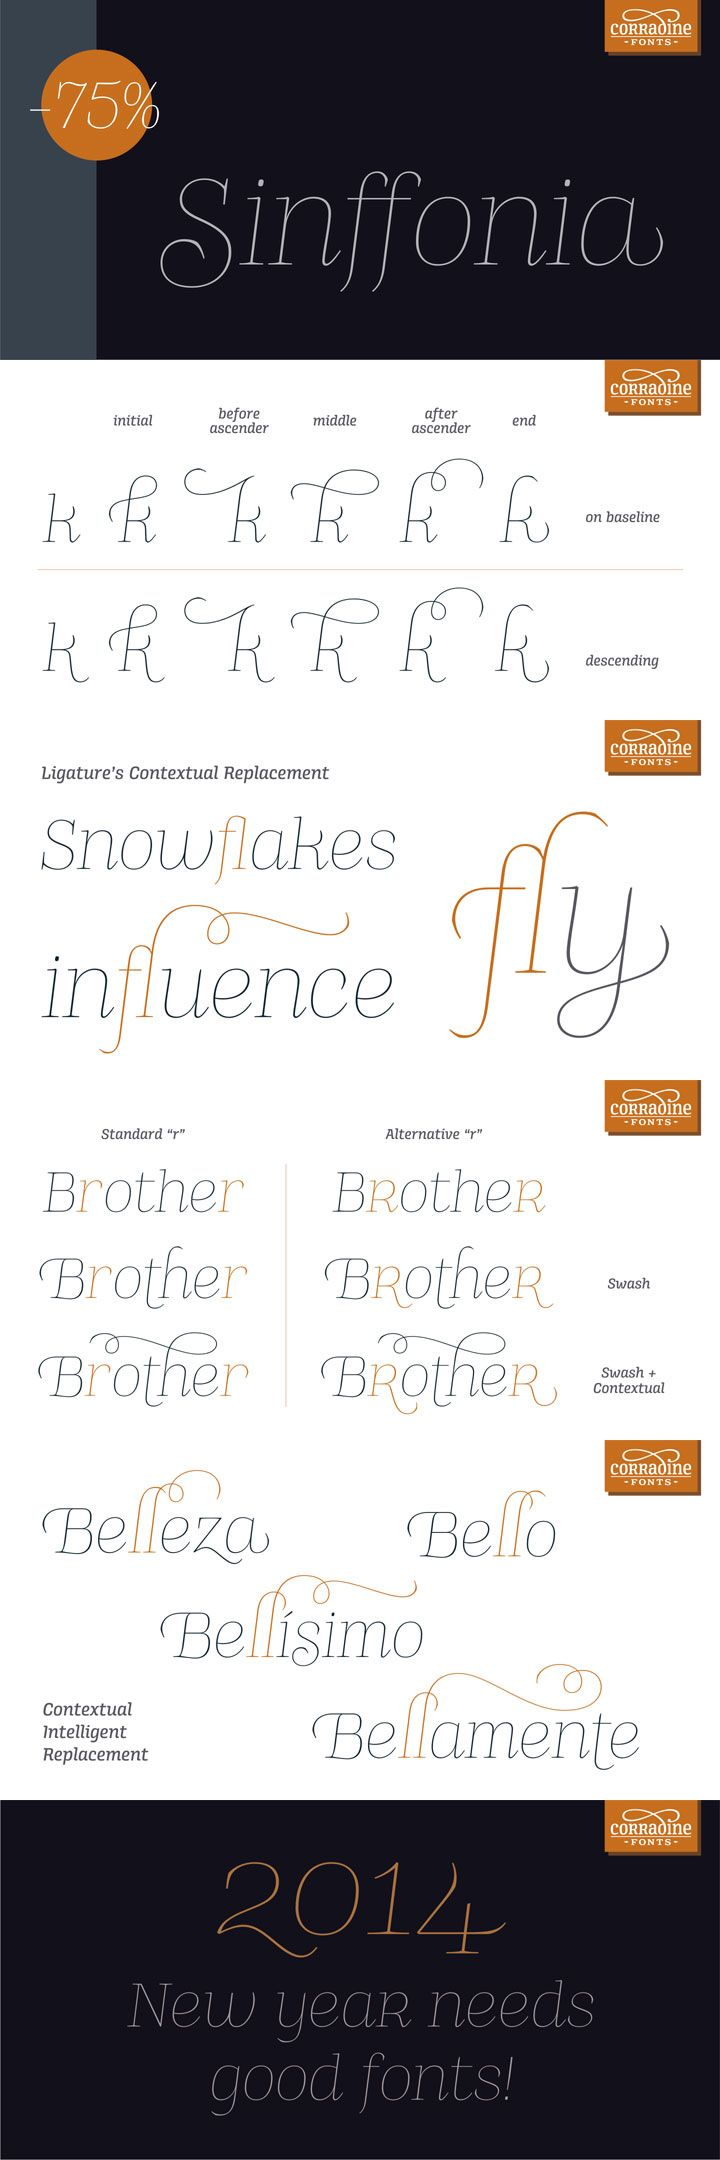 Sinffonia font - thin, elegant, sophisticated roman style script. Loads of ligatures, alternates, and swash options. By Corradine Fonts.